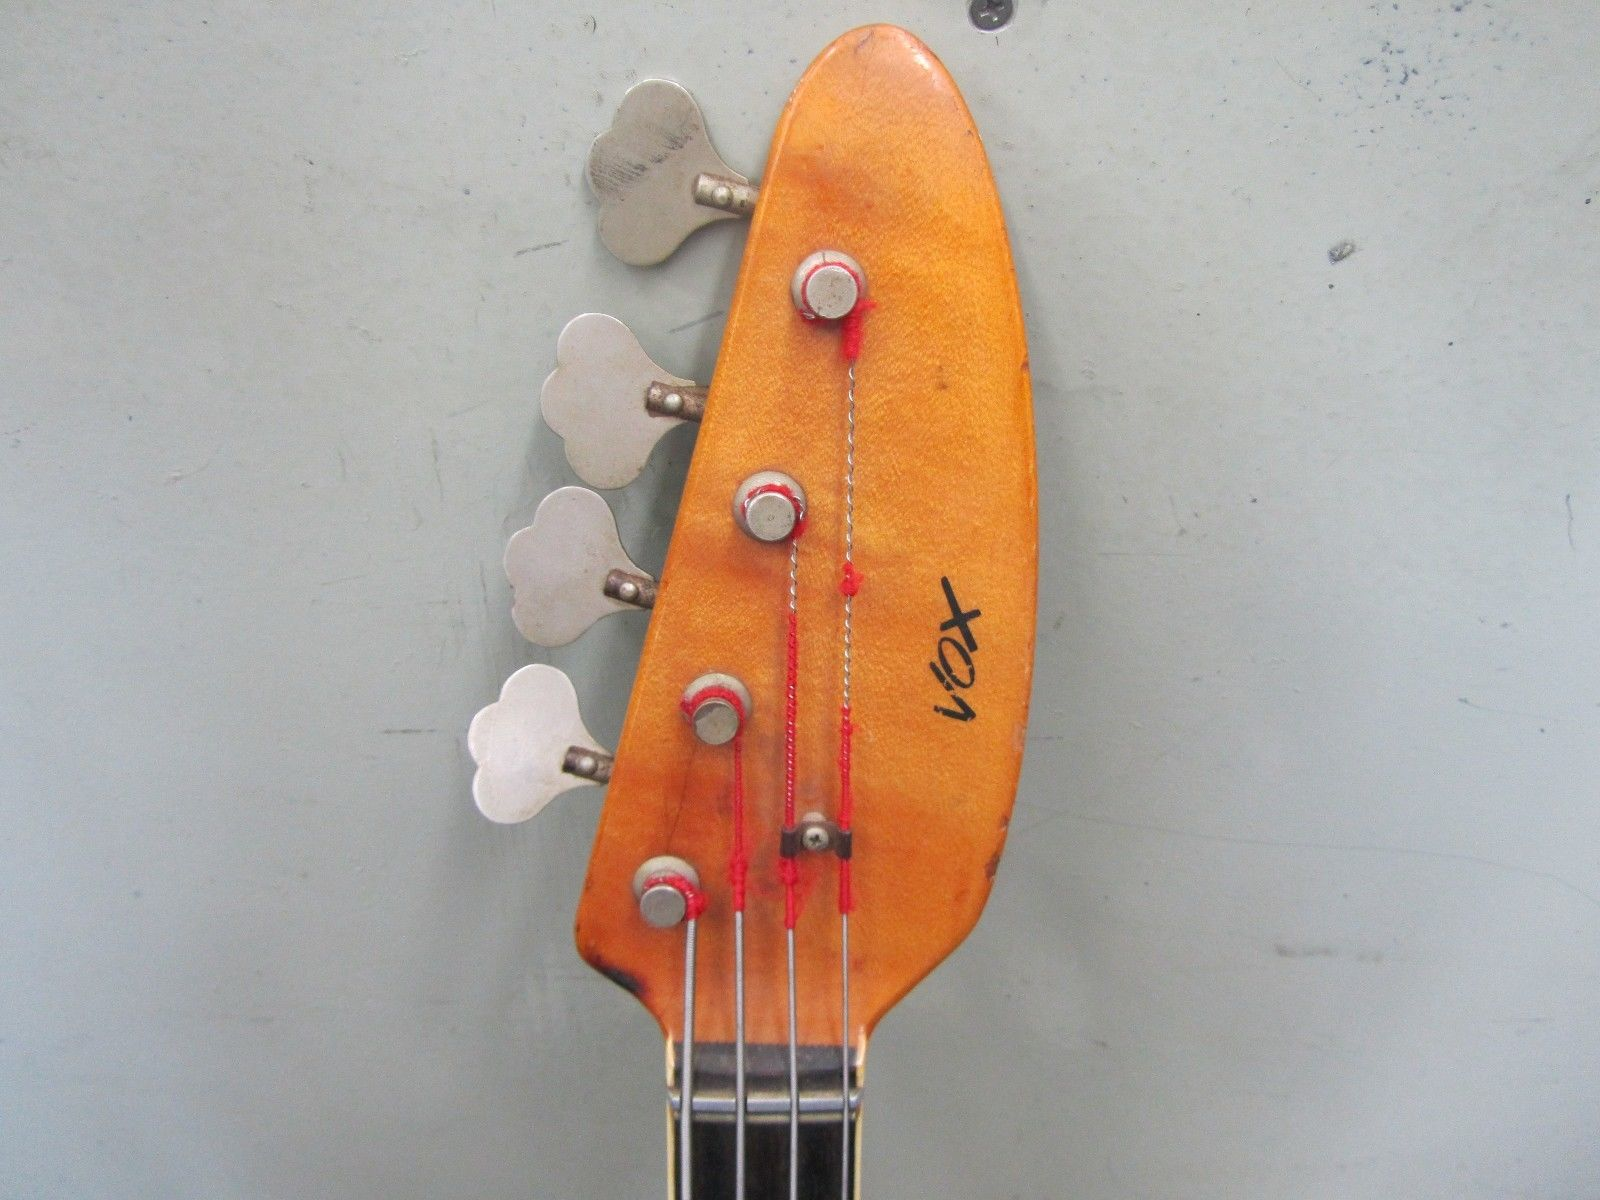 *** Vox Classic Bass Guitar Made in Italy 4 String 50-60s?? ***